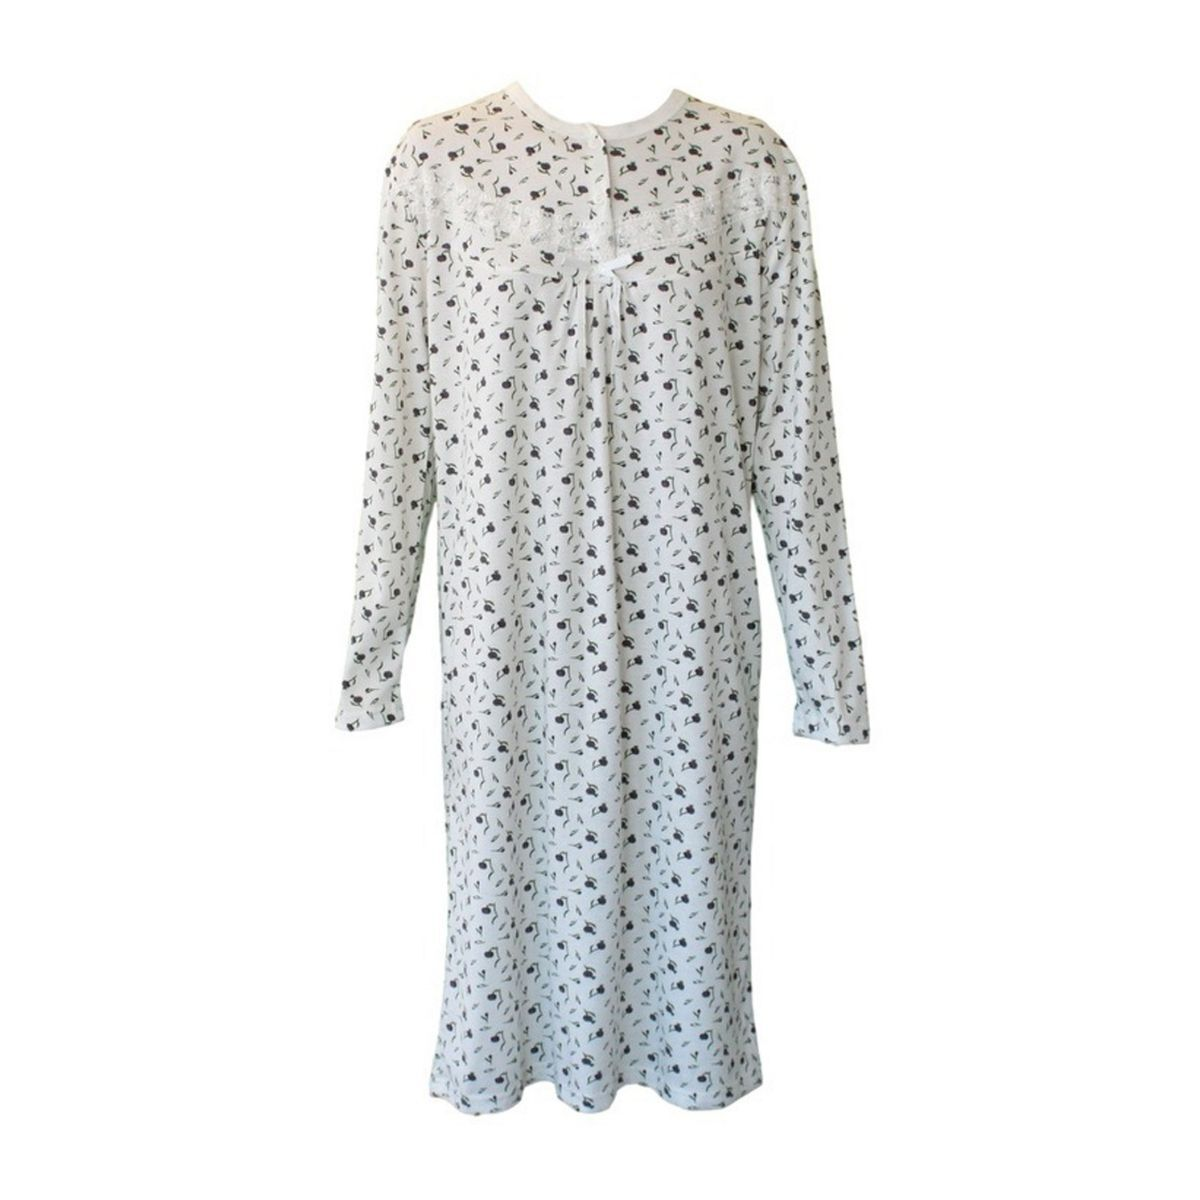 Women-039-s-Cotton-Long-Sleeve-Nightie-Night-Gown-Winter-Pajamas-Pyjamas-Sleepwear thumbnail 14